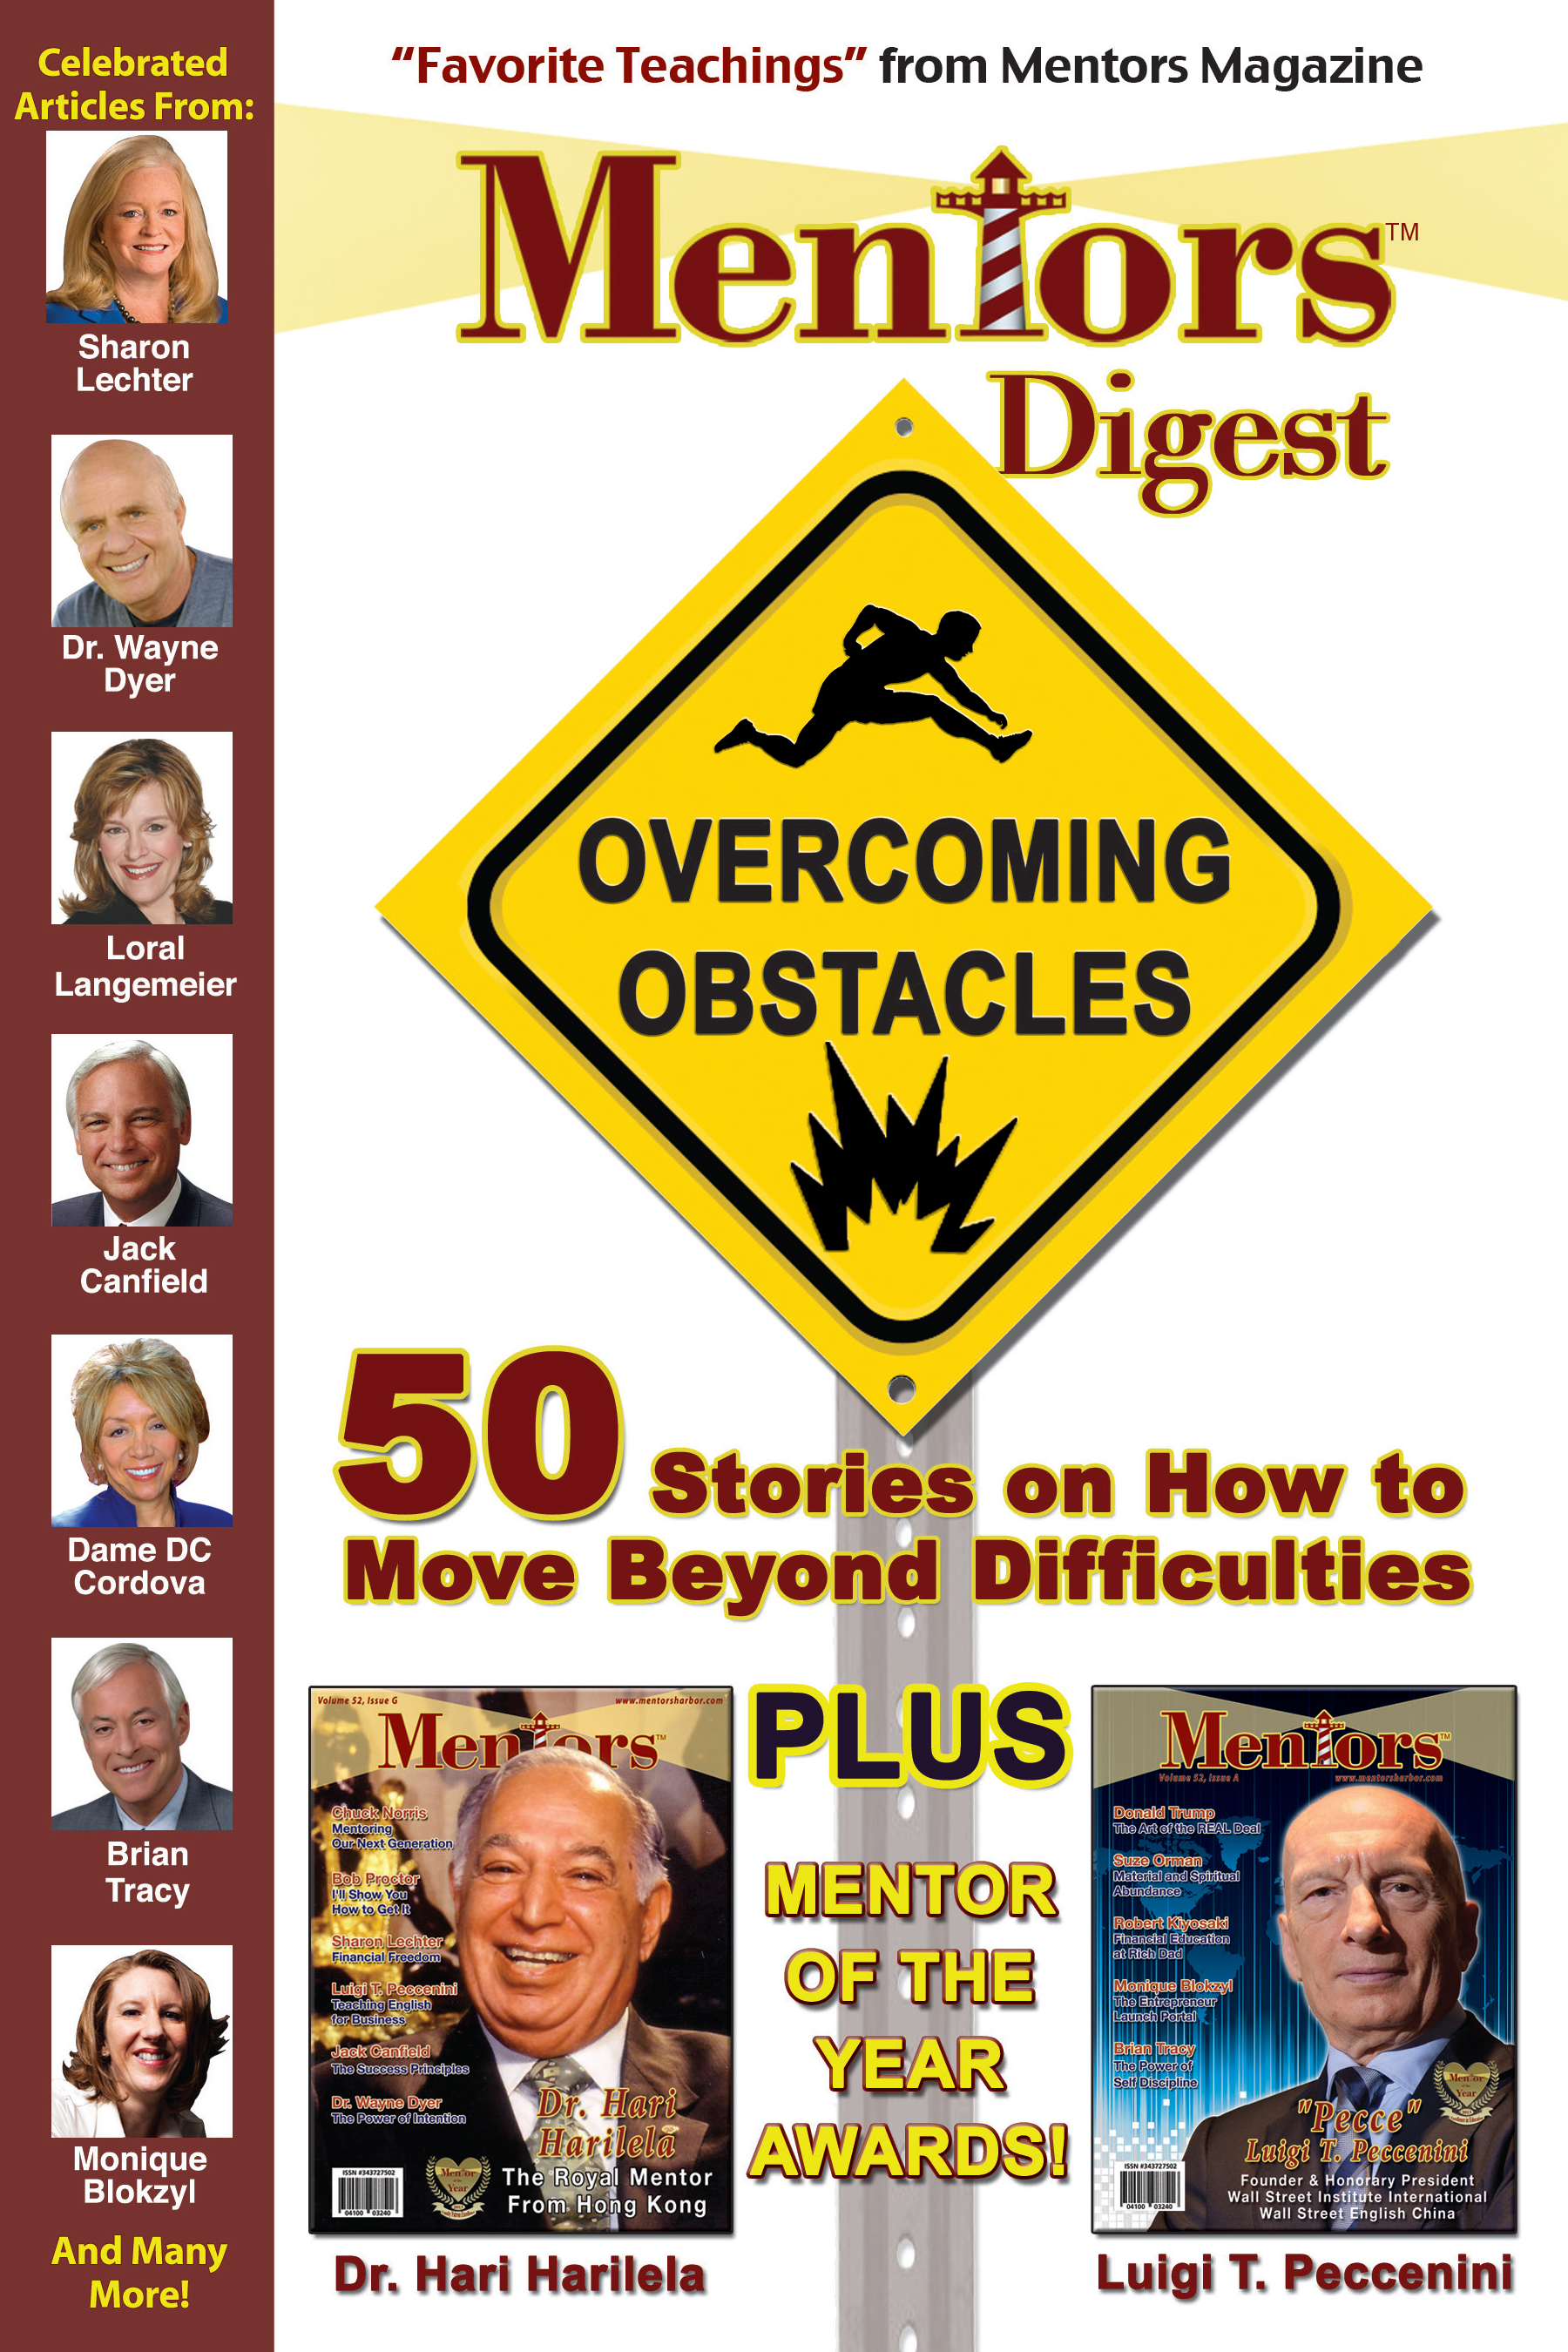 Mentors Digest – 50 Stories on How to Move Beyond Difficulties